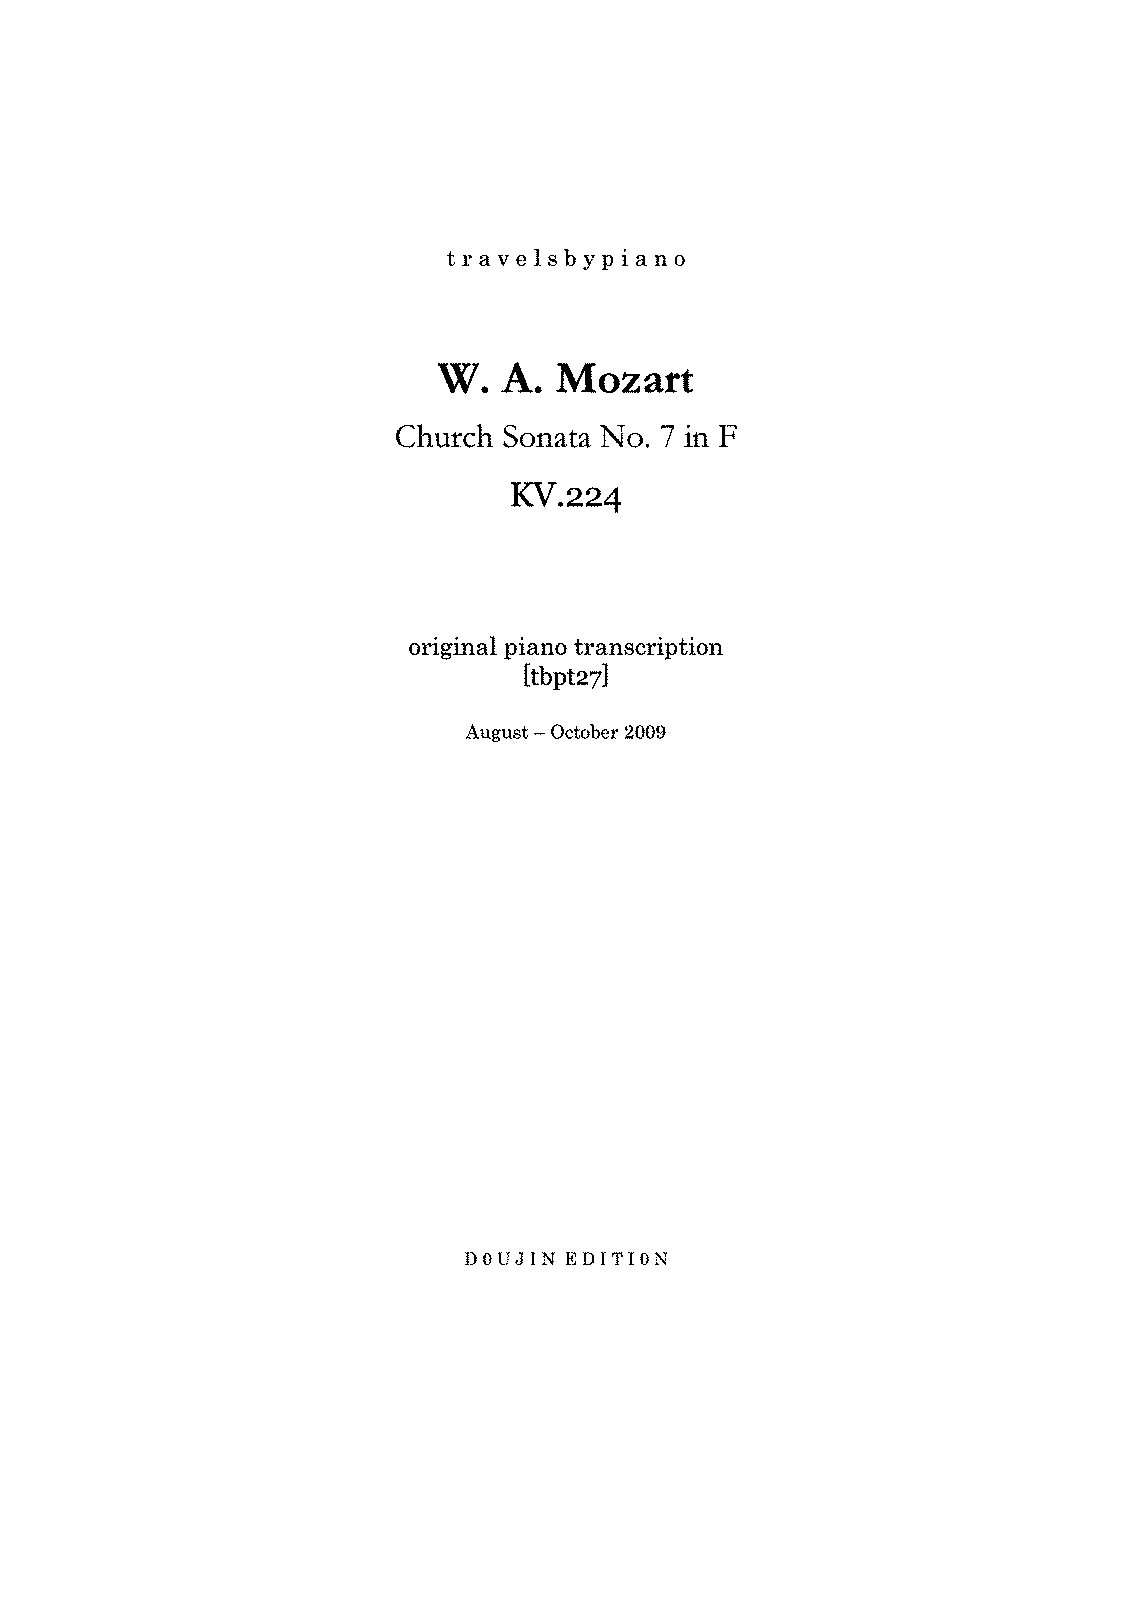 PMLP106048--travelsbypiano- tbpt27 W.A.Mozart Church Sonata No.7 in F KV.224 piano transcription -85D6664E-.pdf